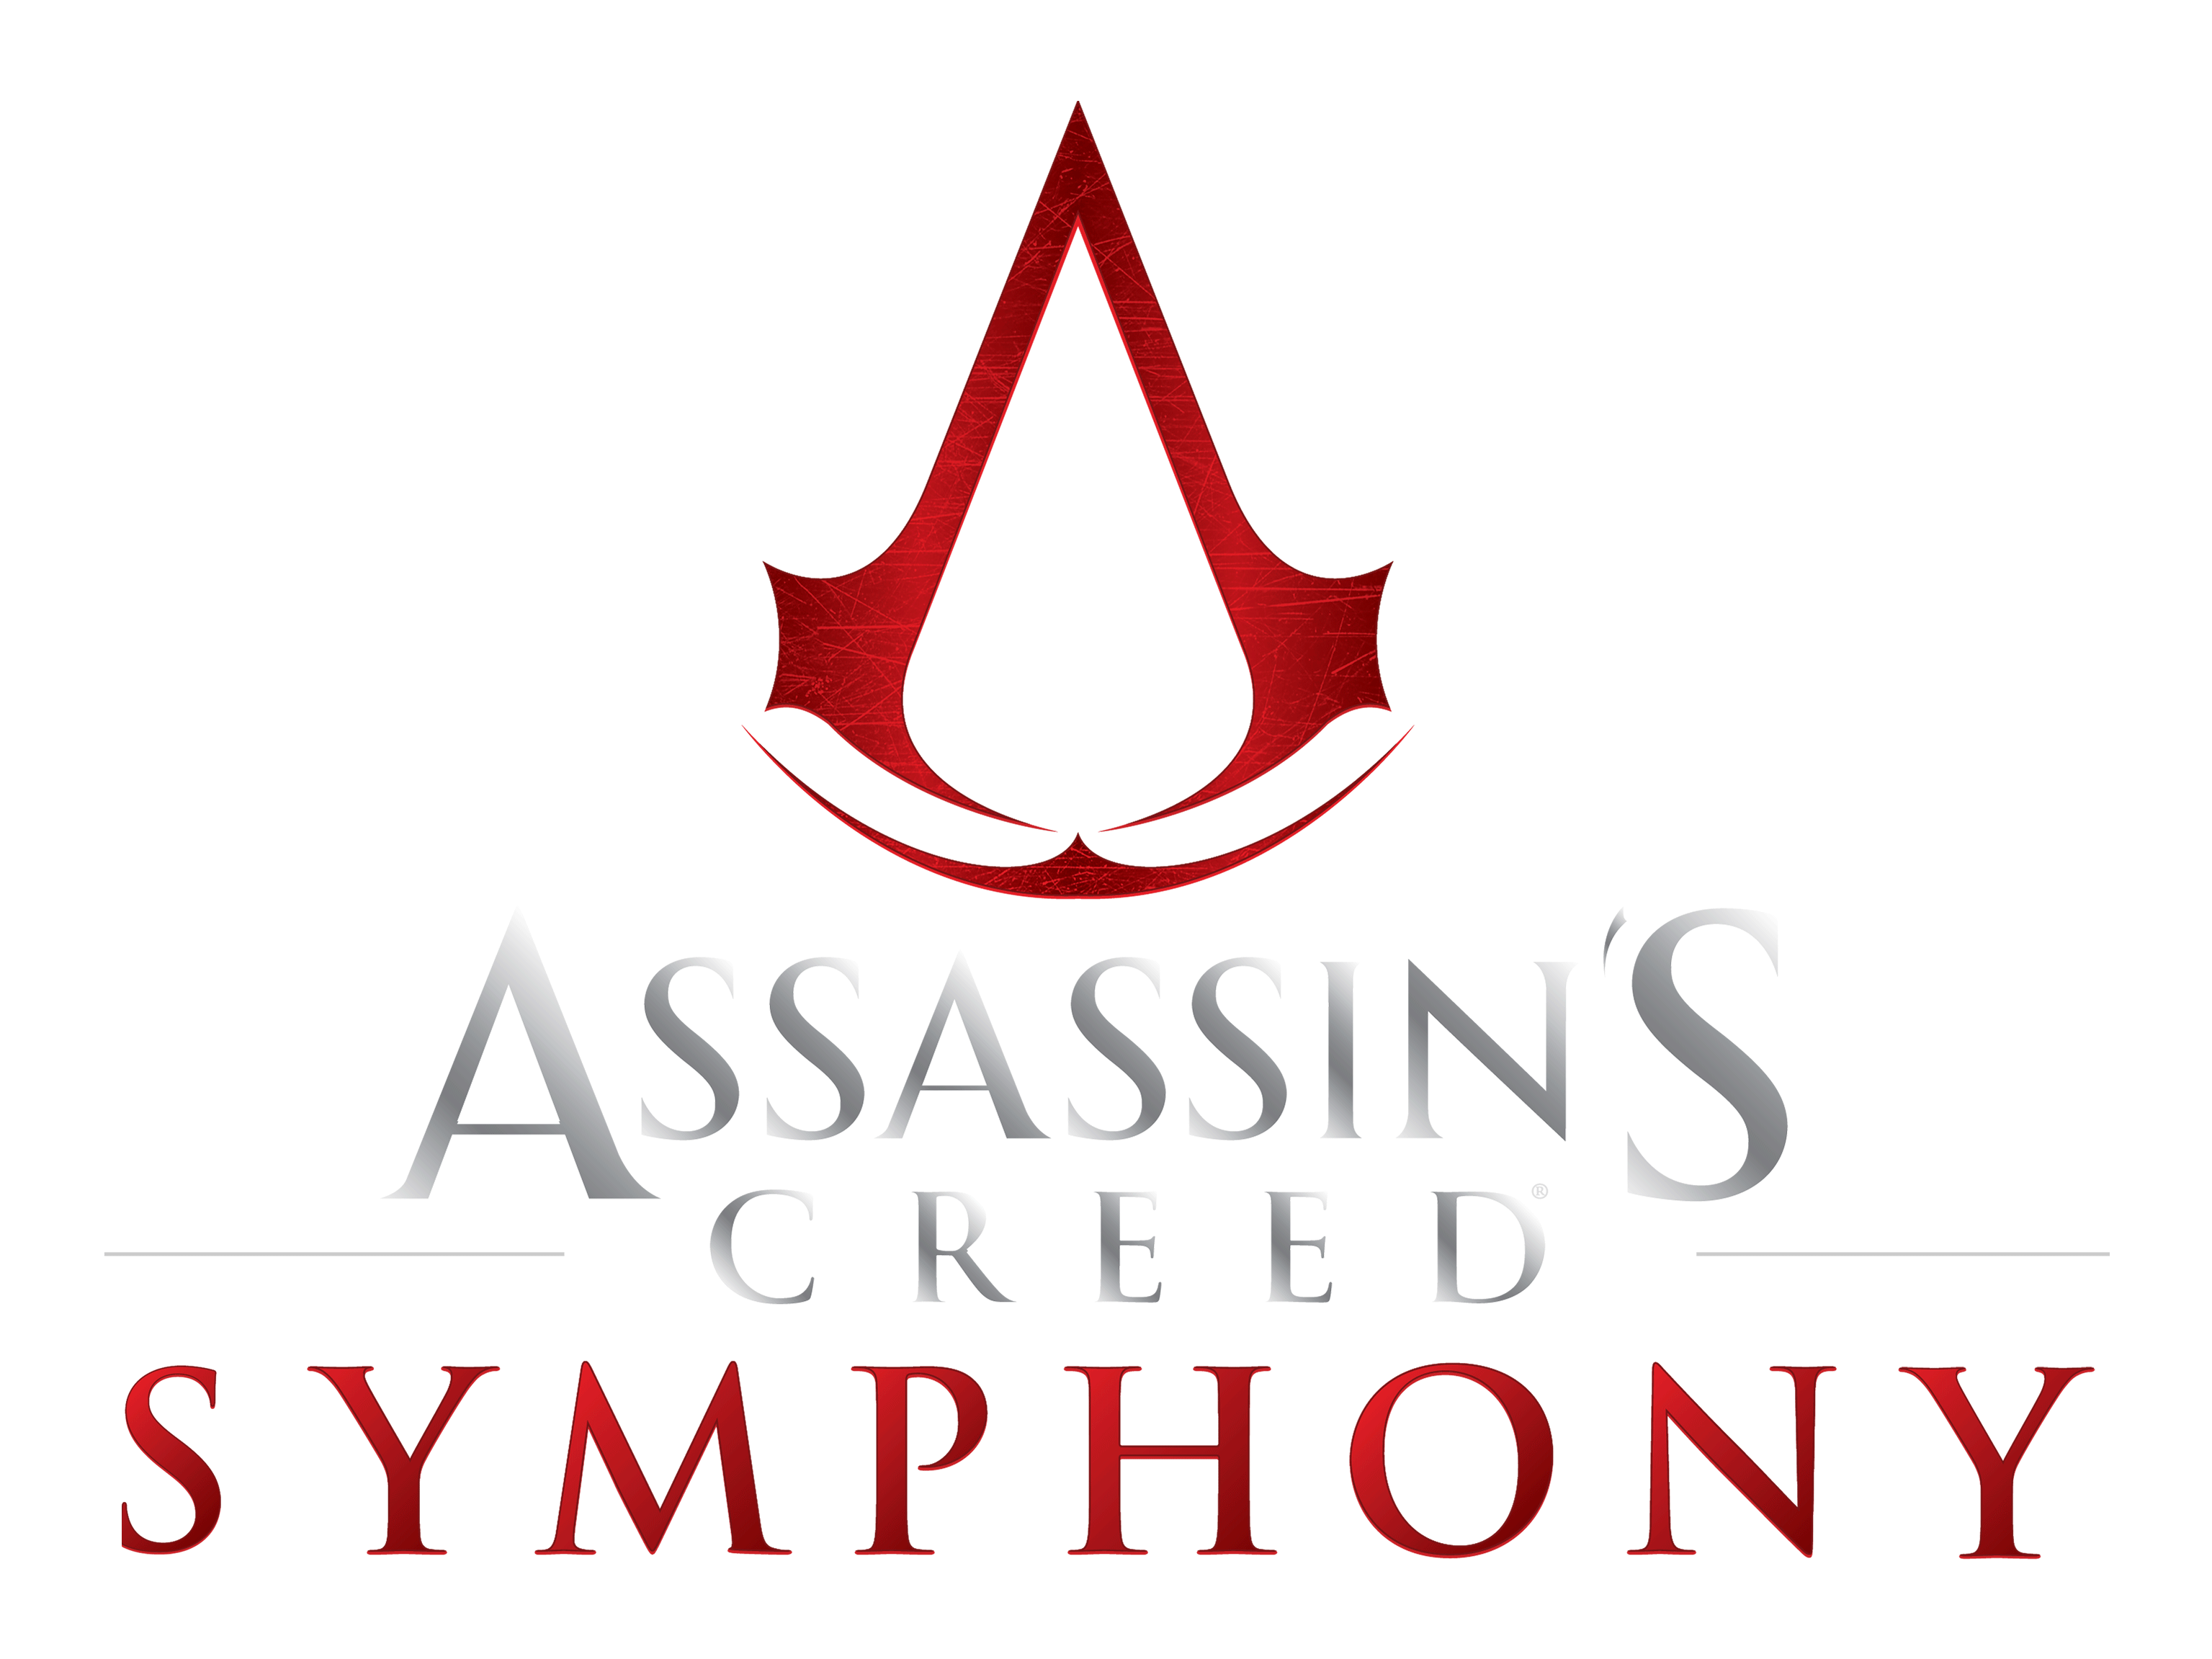 assassinscreedsymphony